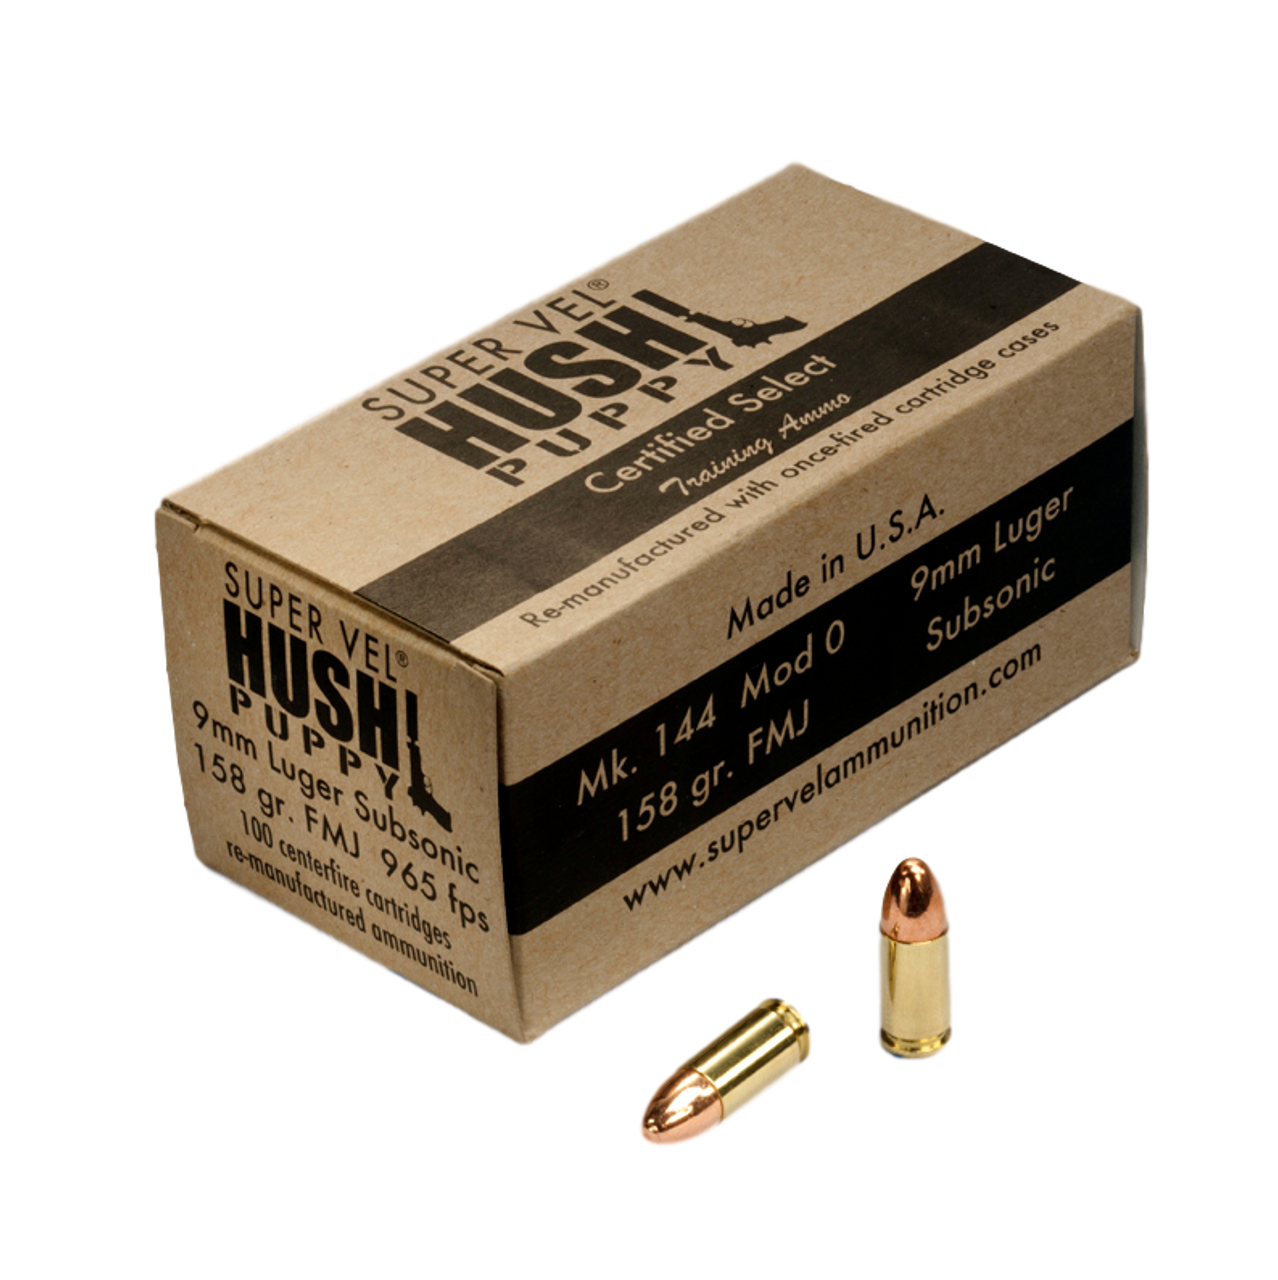 """9mm Luger """"Hush Puppy"""" 158 gr. FMJ subsonic """"Certified Select""""  (100-count box)"""